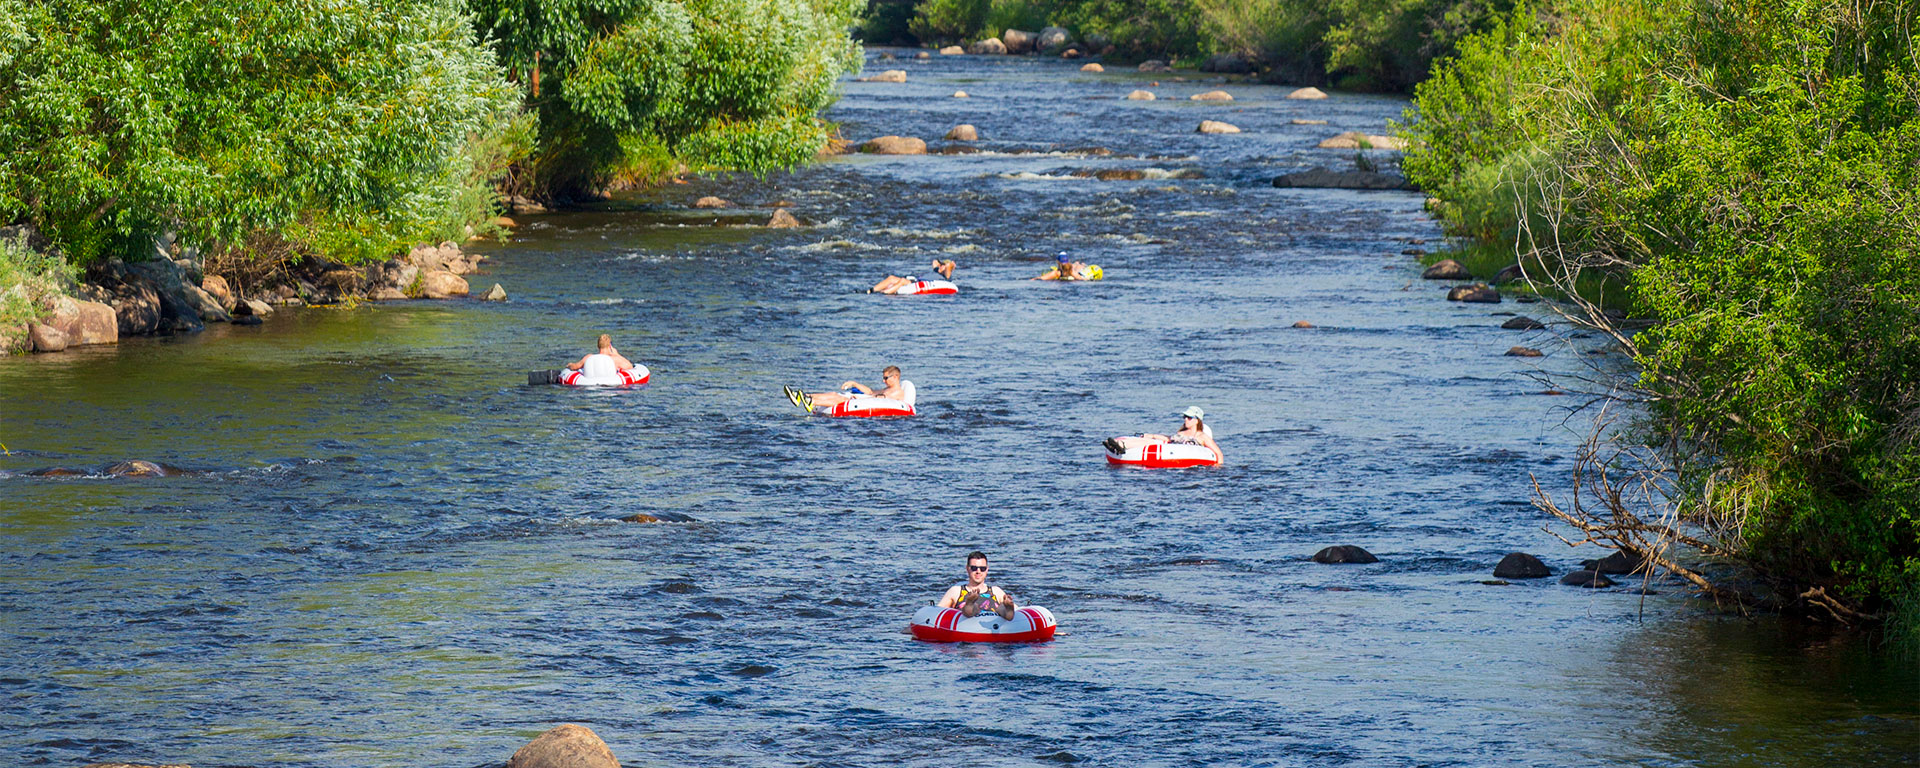 tubing the yampa river at steamboat springs colorado https www steamboatchamber com activities water activities tubing